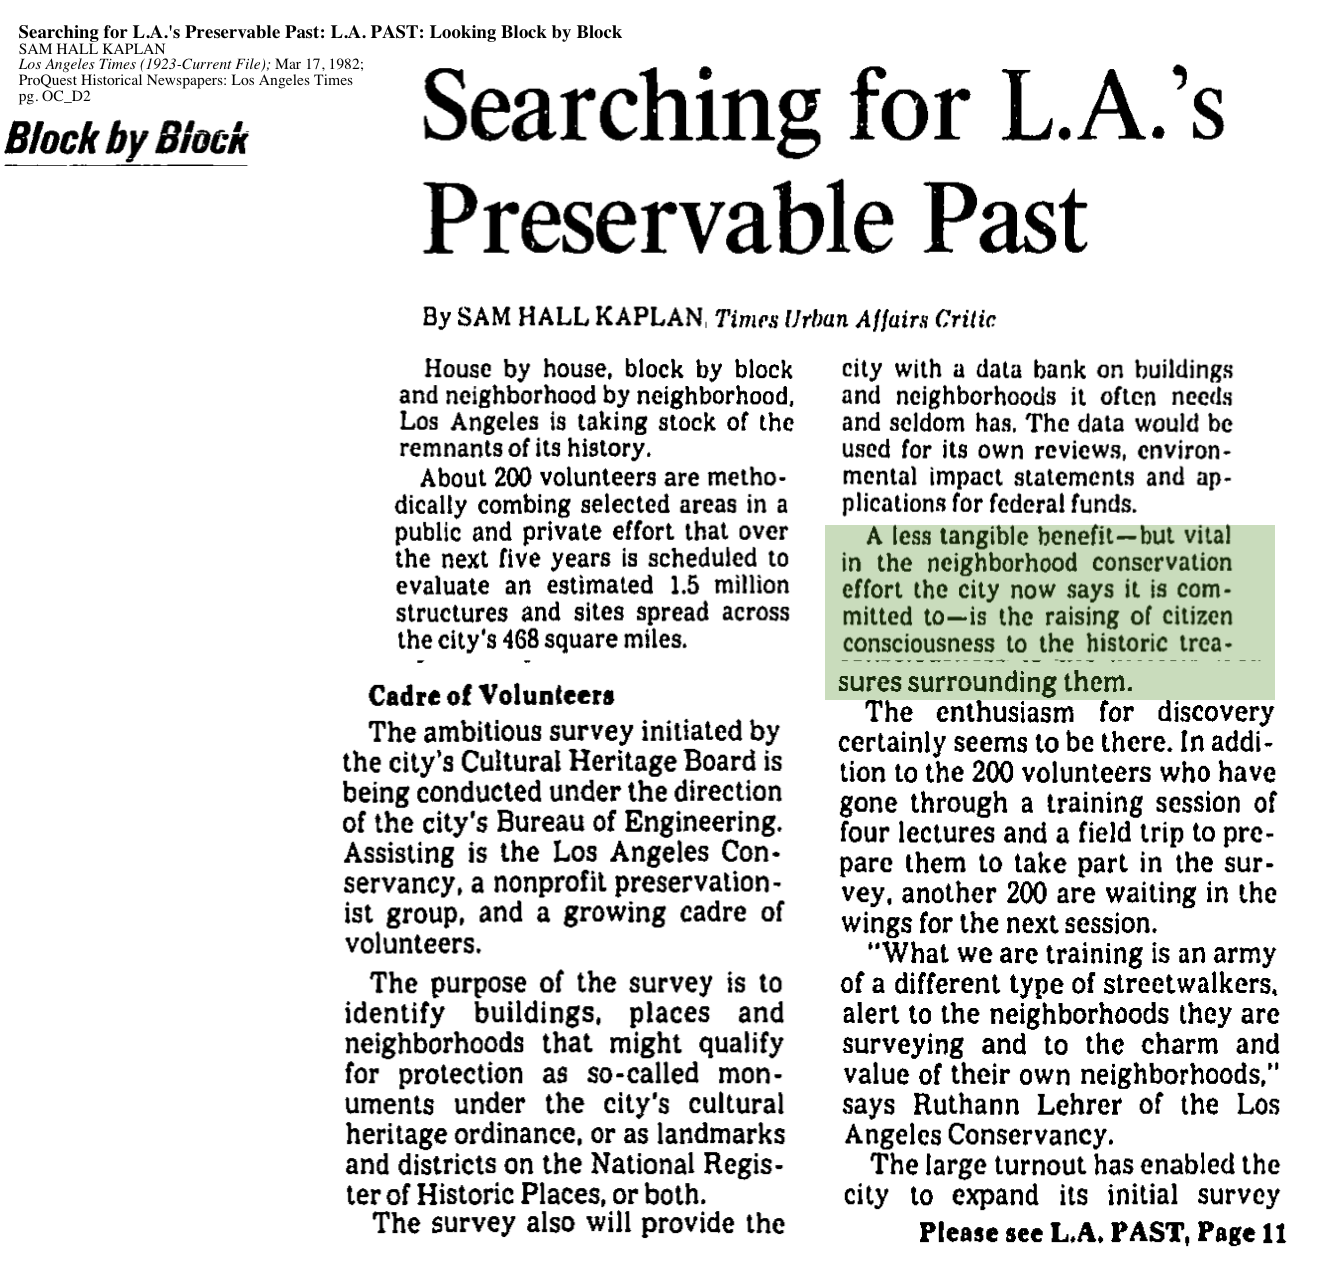 1982-Searching for L.A.'s Preservable Past